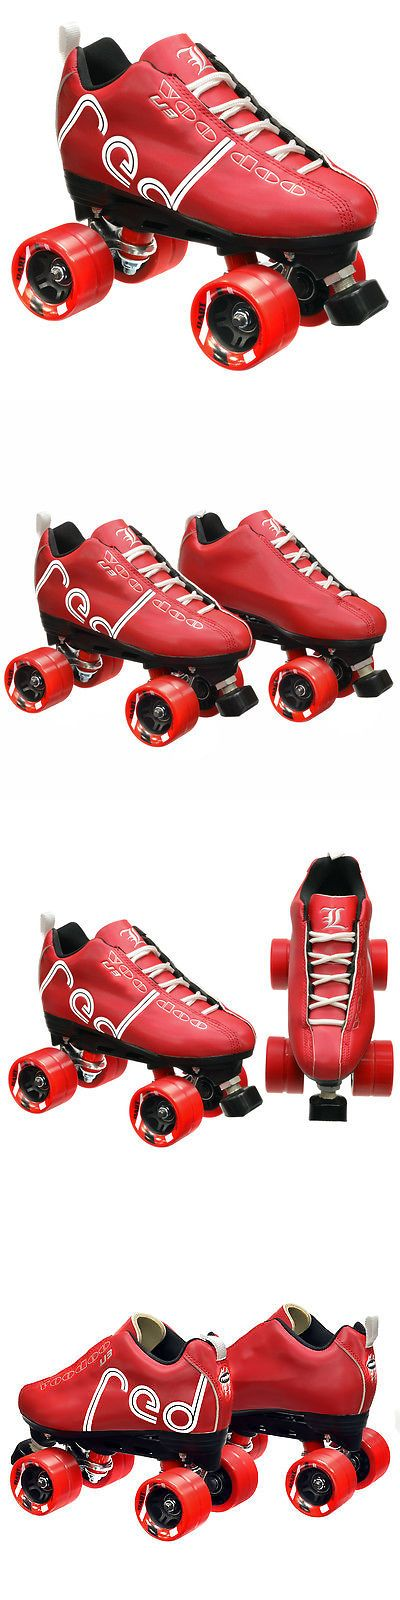 Men 71155: Labeda Voodoo U3 Quad Roller Customized Red Speed Skates With Dart Wheels -> BUY IT NOW ONLY: $89.99 on eBay!